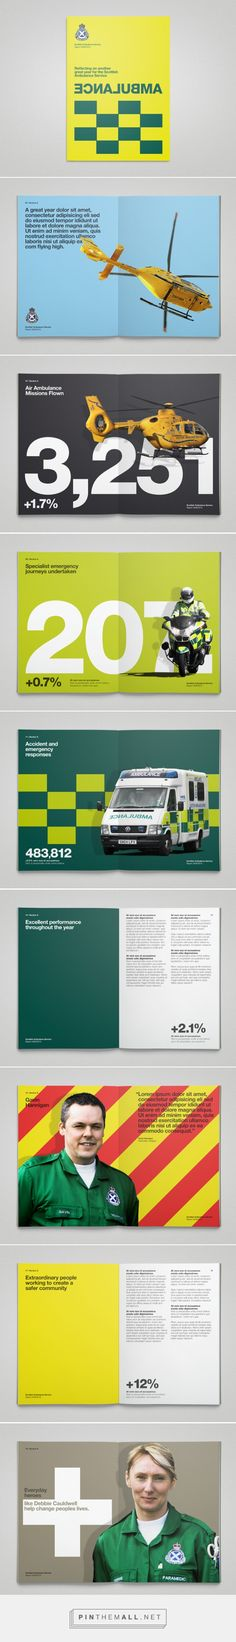 Ambulance Service - Colin Bennett - created via https://pinthemall.net